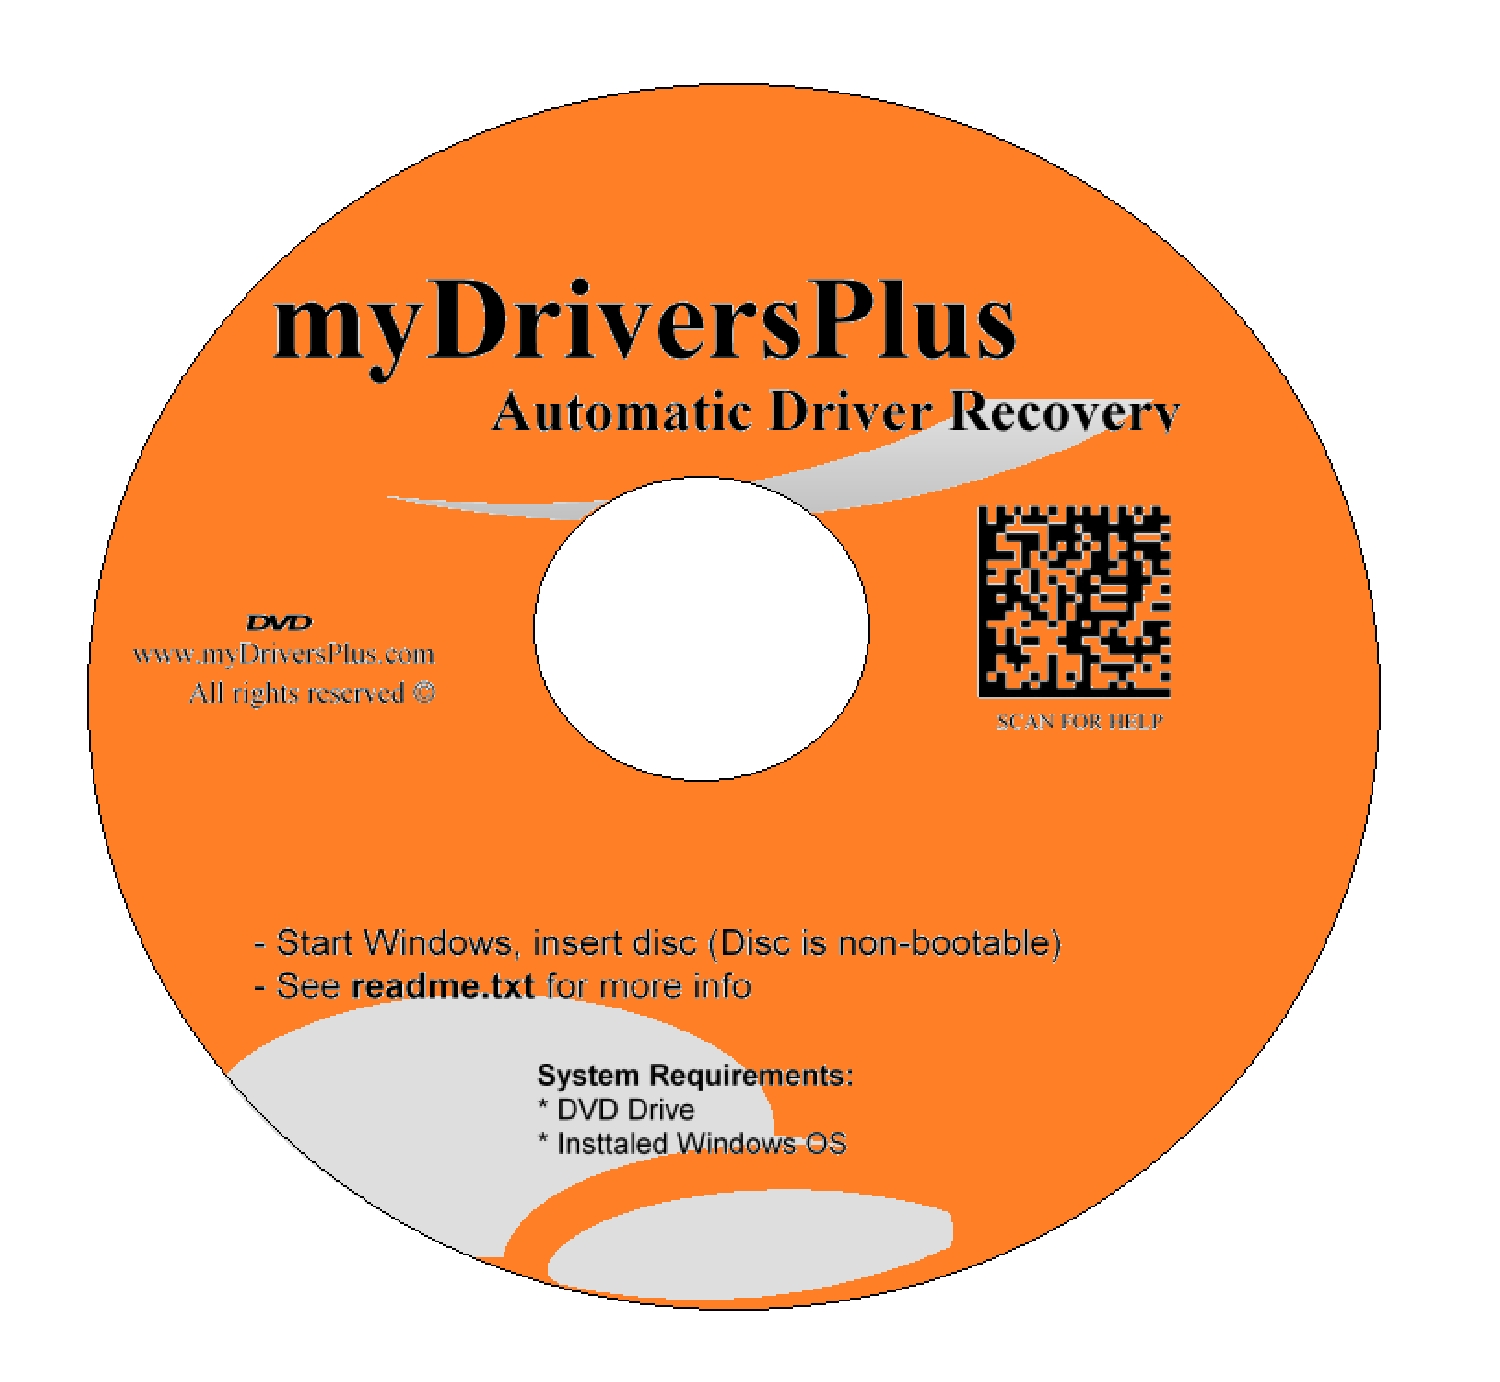 Dell Latitude XT3 Drivers Recovery Restore Resource Utilities Software with Automatic One-Click Installer Unattended  sc 1 st  Walmart & Dell Latitude XT3 Drivers Recovery Restore Resource Utilities ...